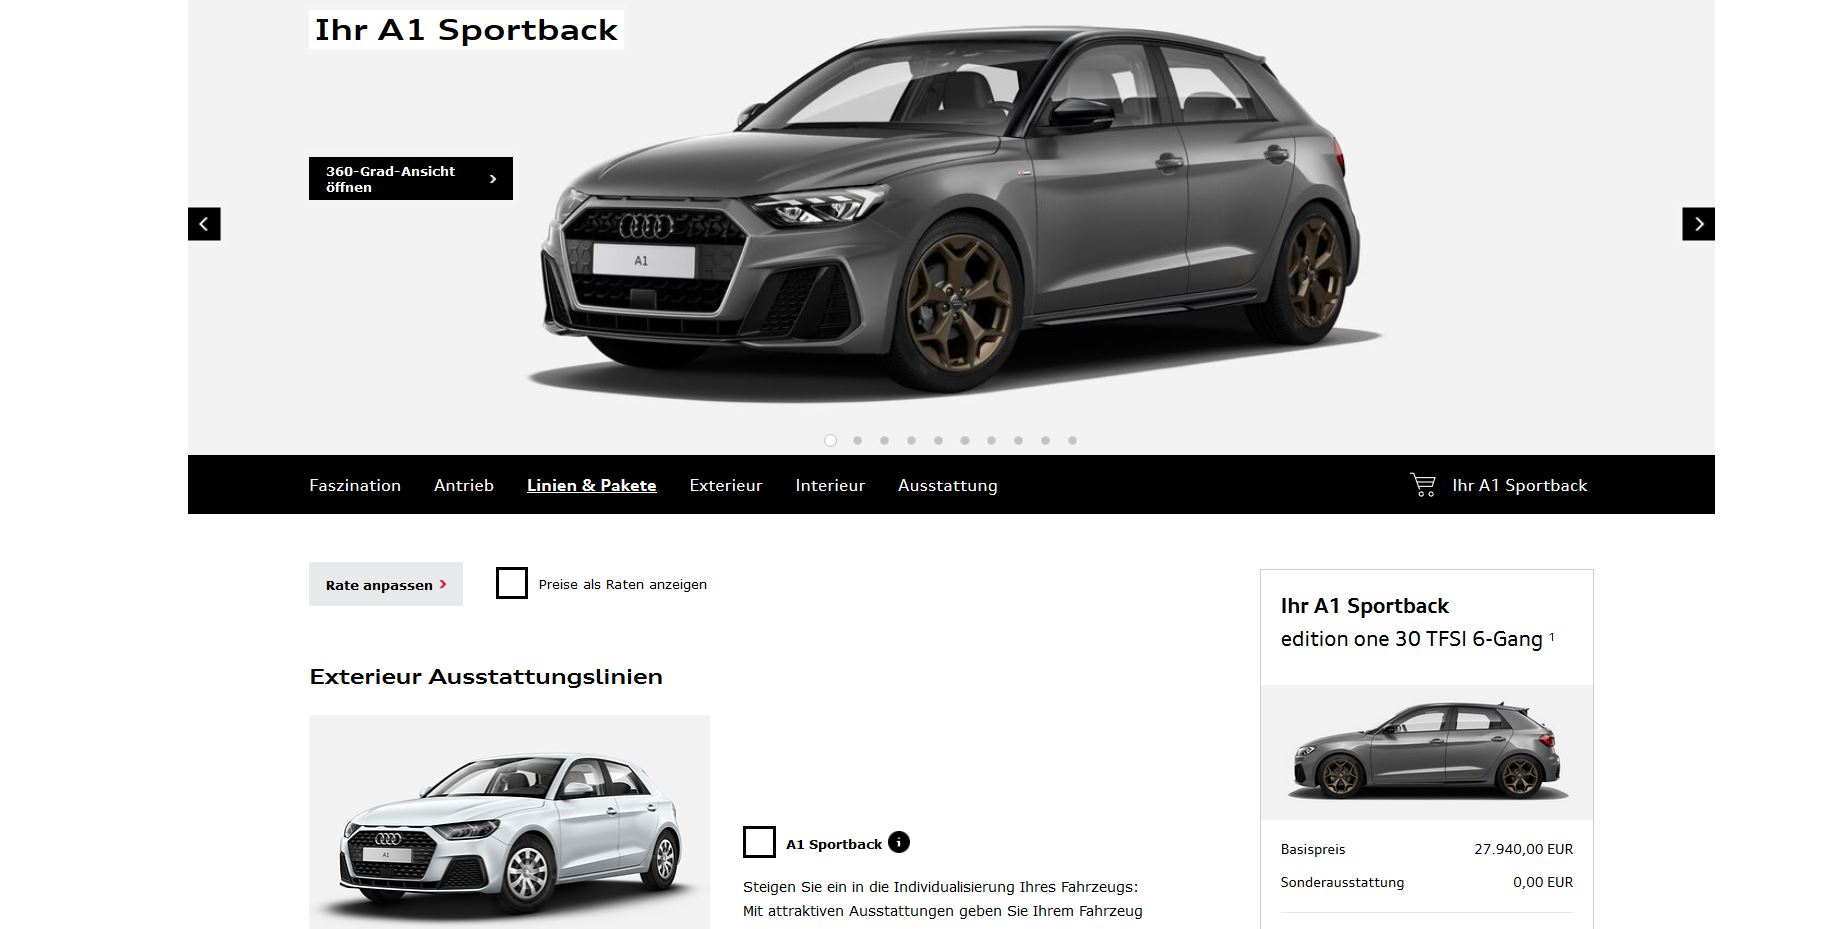 New Audi A1 Configurator Launched Only Has 1 Liter Engine